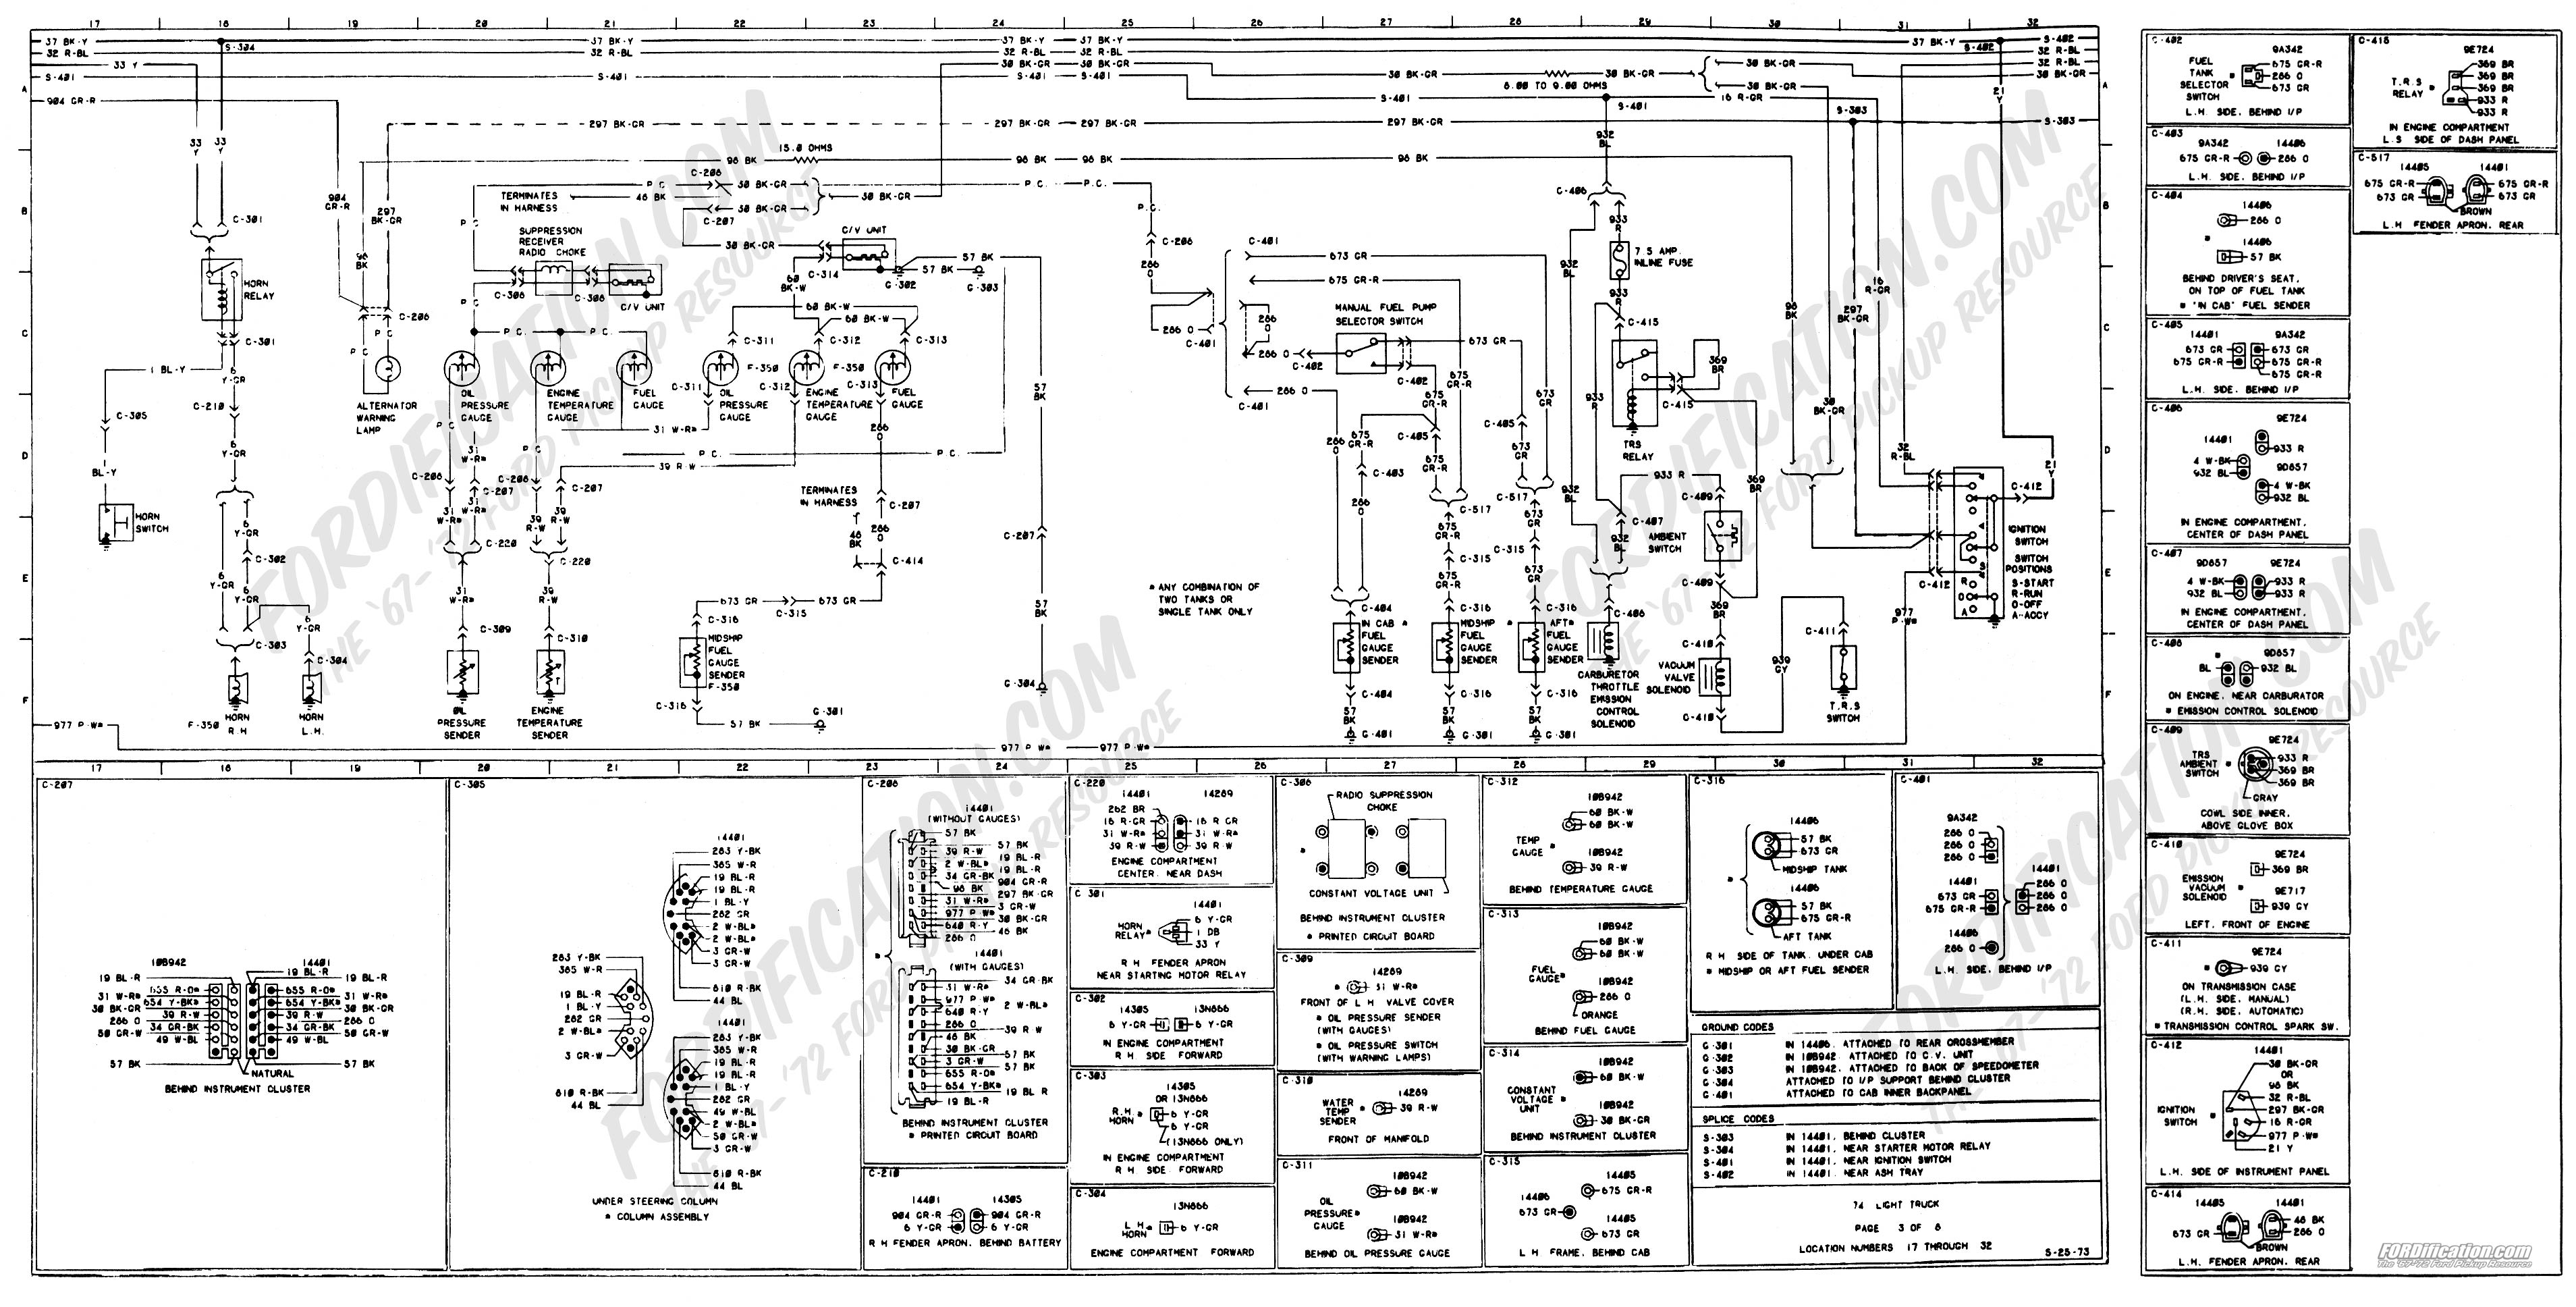 wiring_74master_3of8 1973 1979 ford truck wiring diagrams & schematics fordification net vw beetle electronic ignition wiring diagram at bayanpartner.co